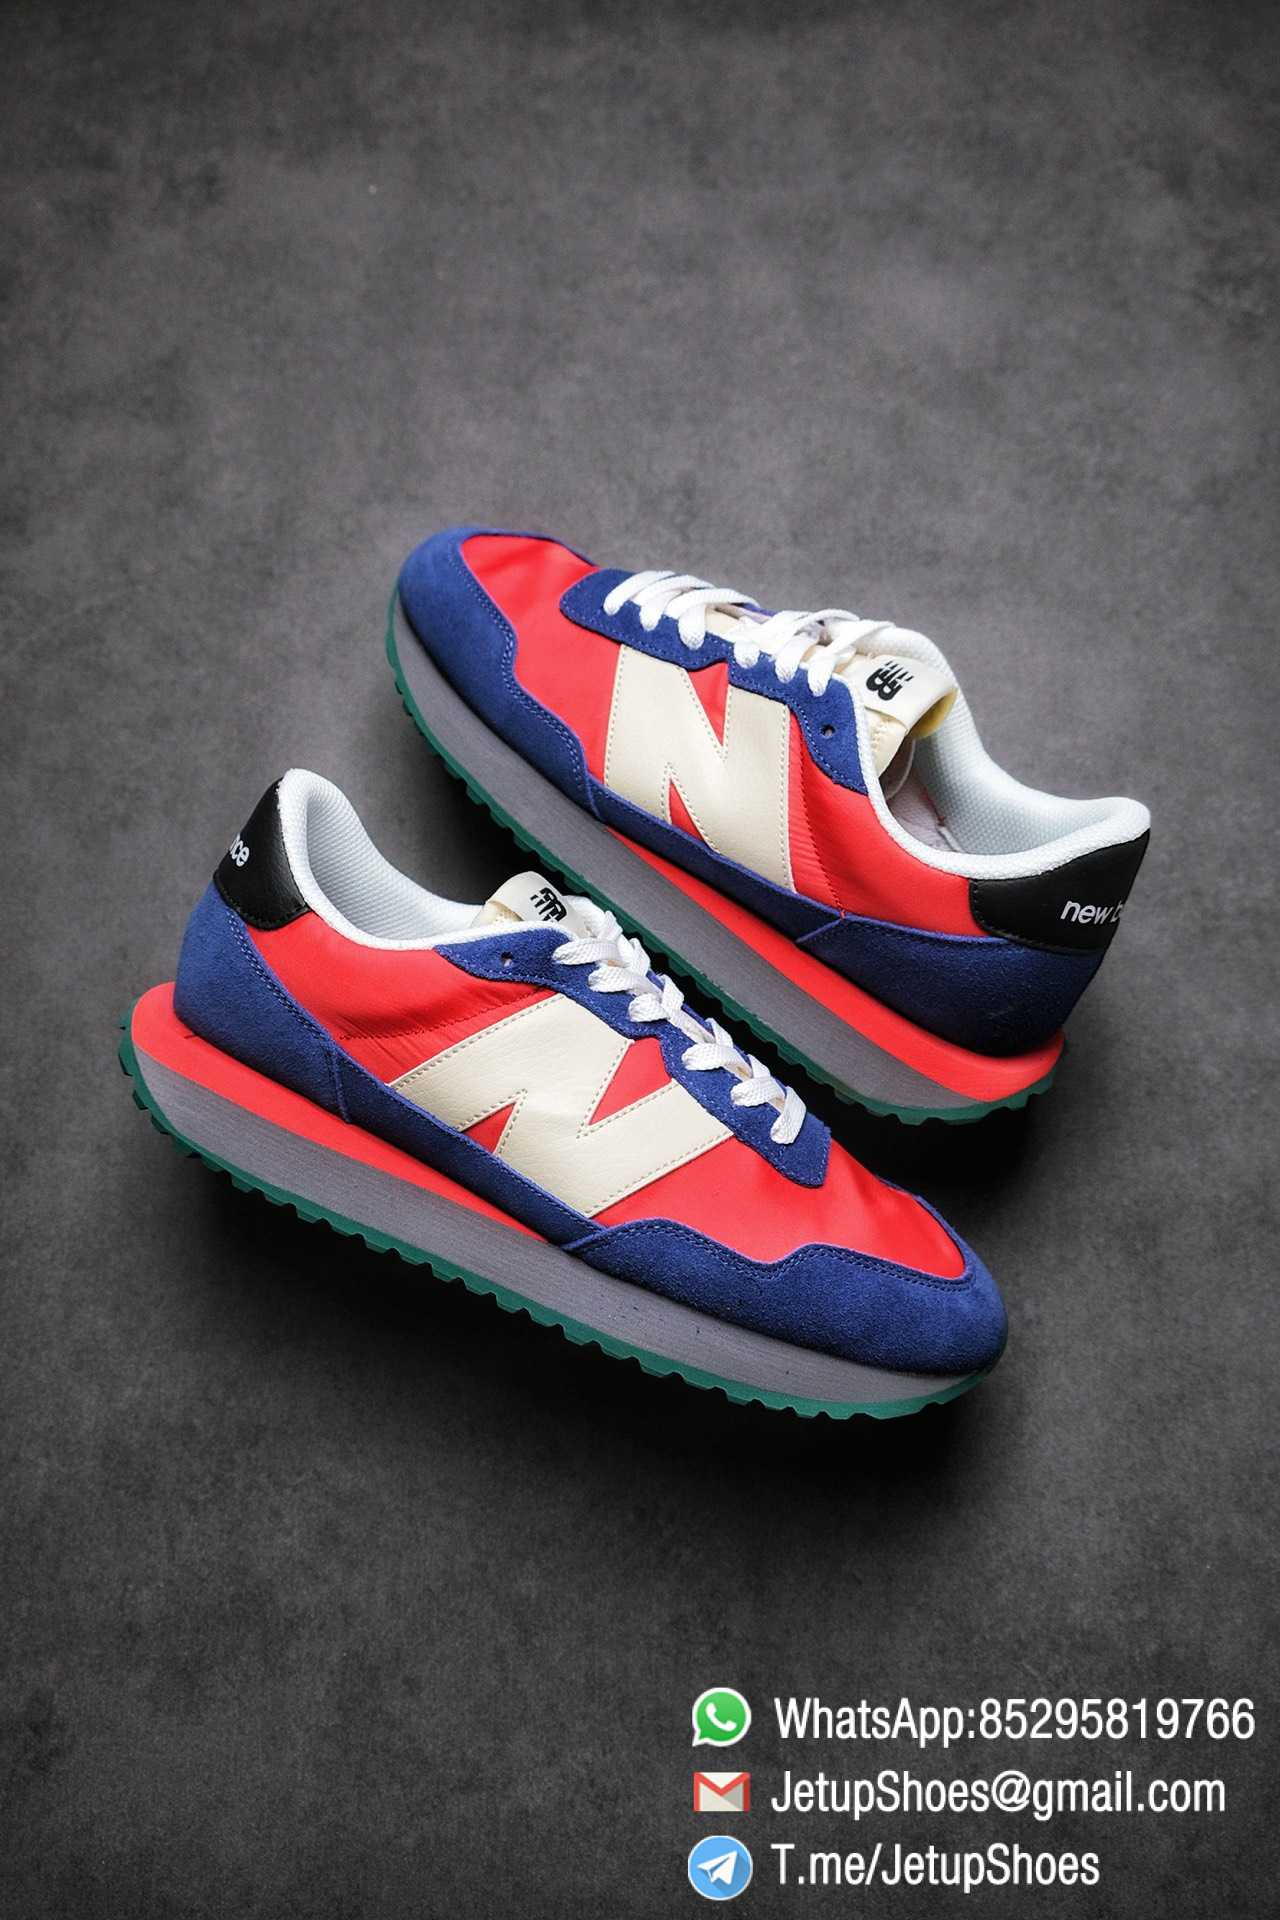 Best Replica New Balance 237 Blue Red SKU MS237LA2 High Quality Fake Sneakers 01 1